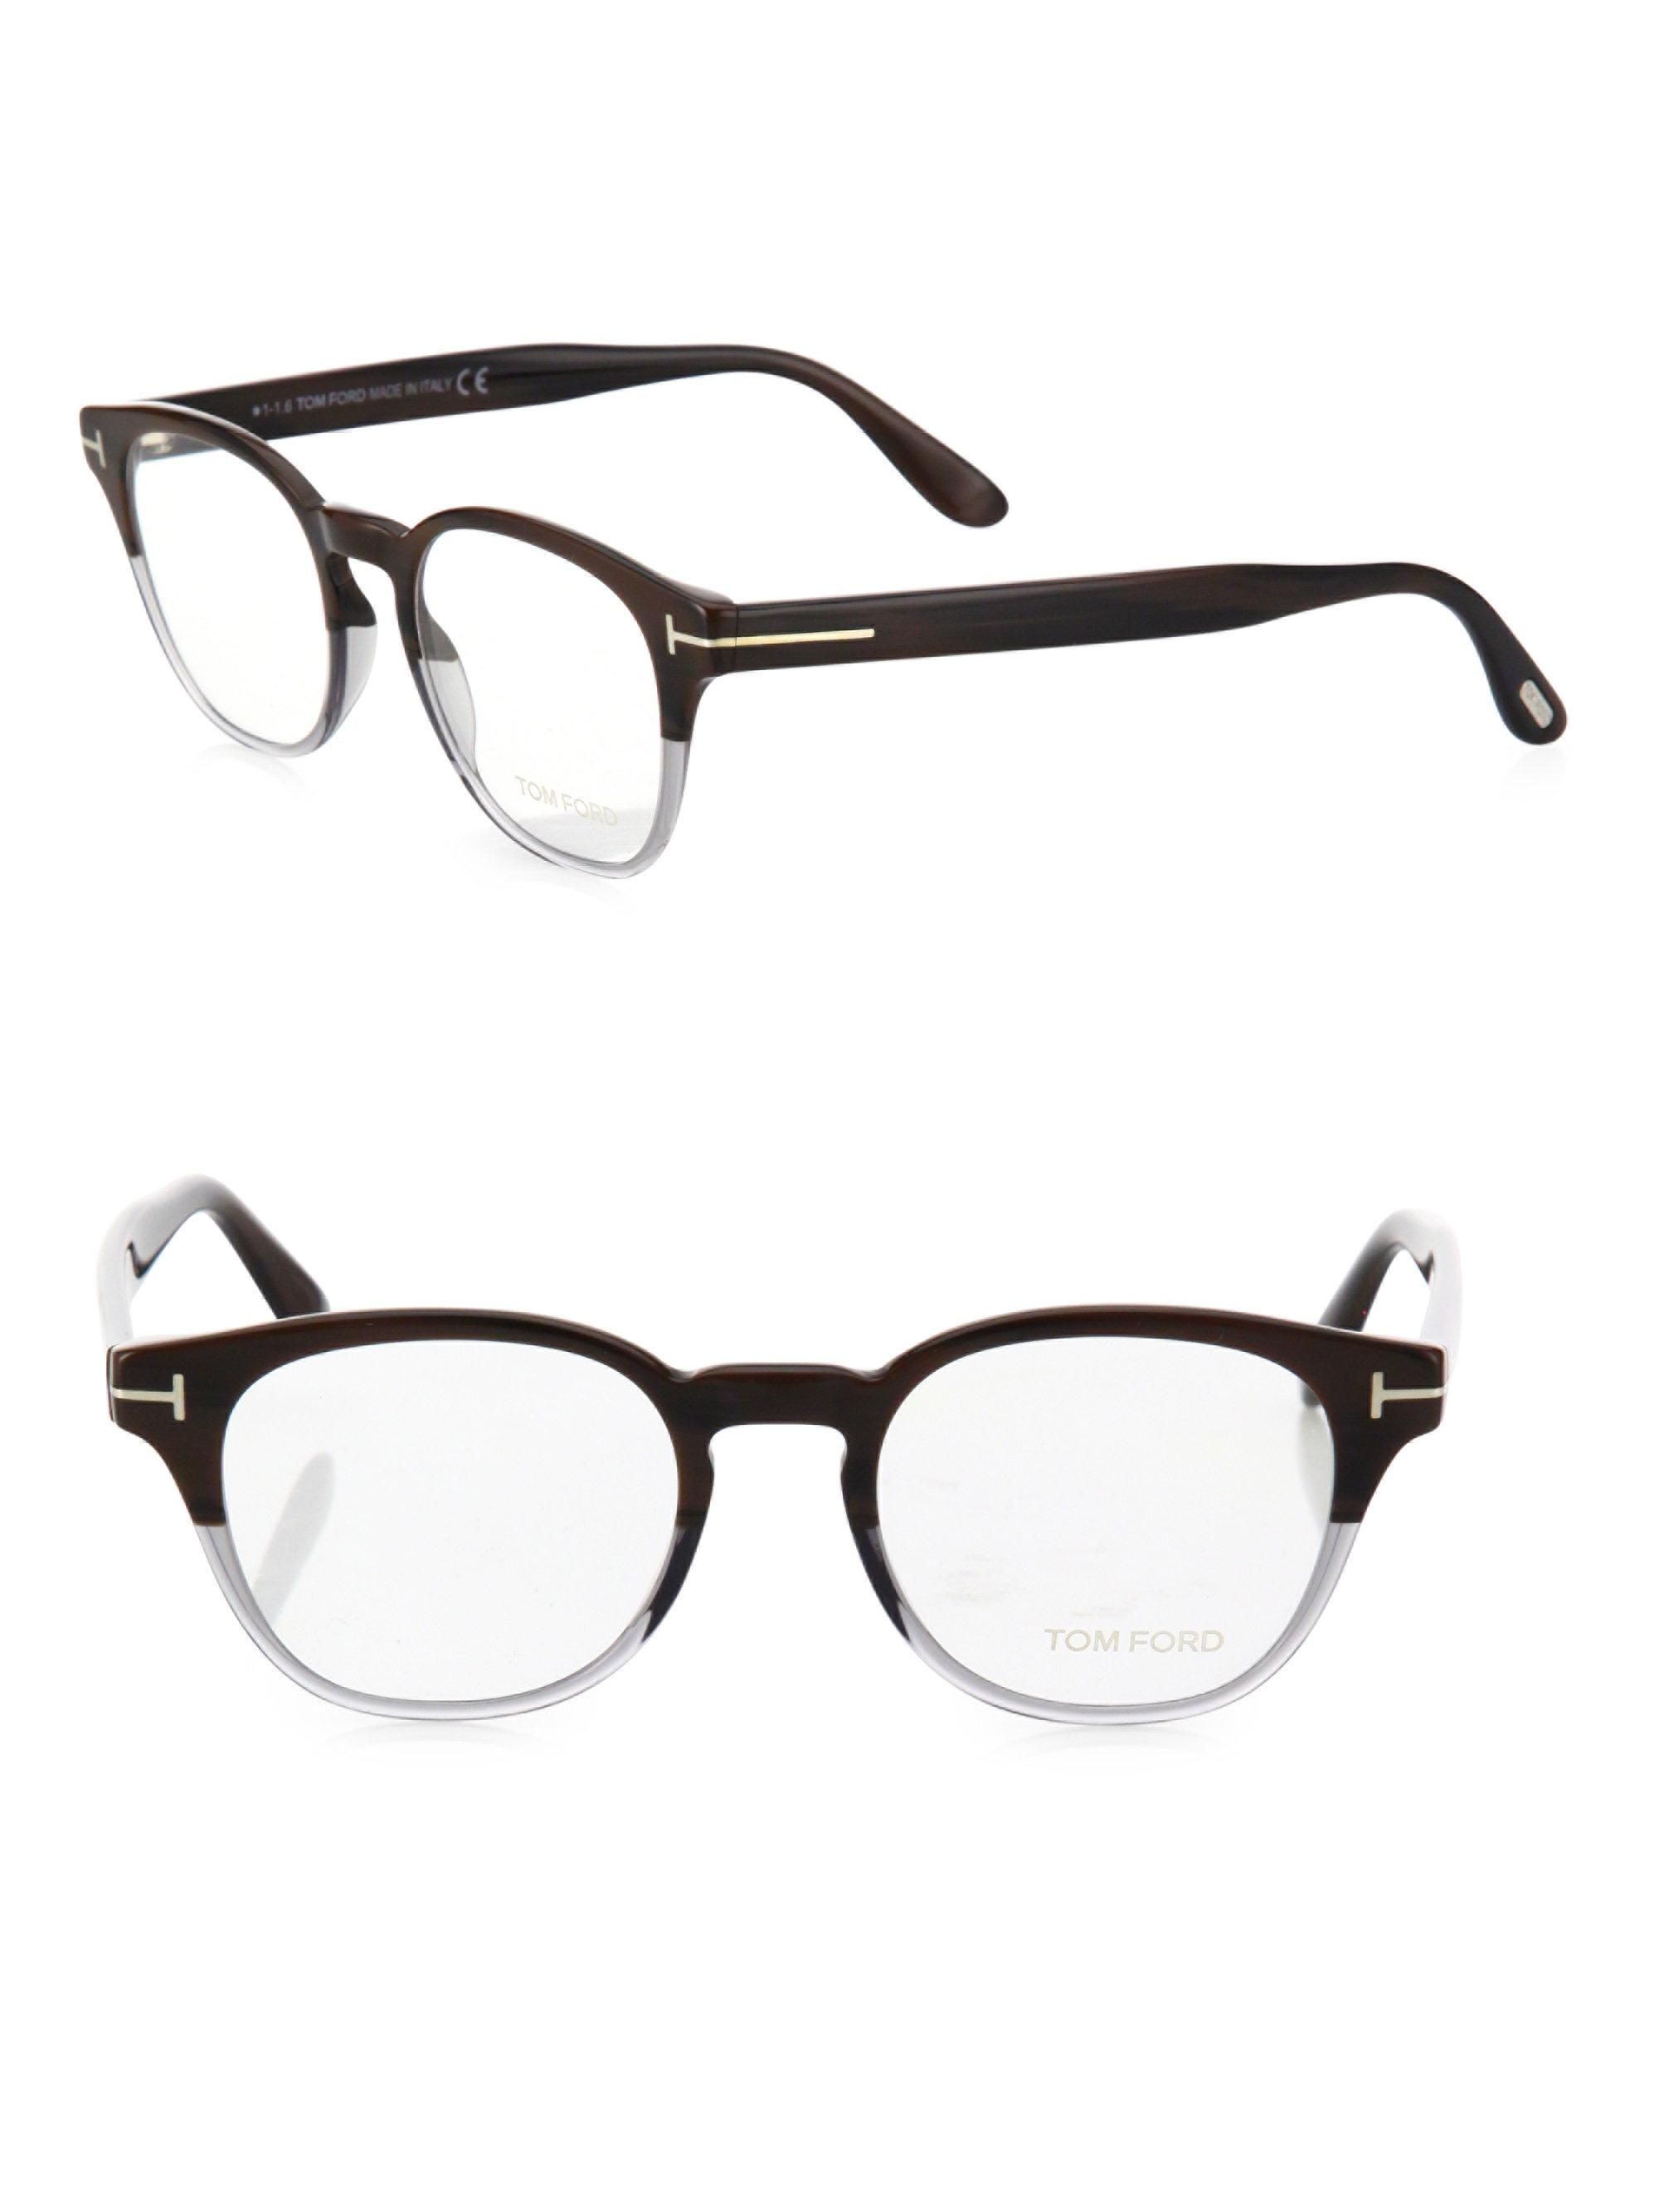 1fefd8d975c8 Tom Ford 48mm Soft Round Optical Glasses for Men - Lyst